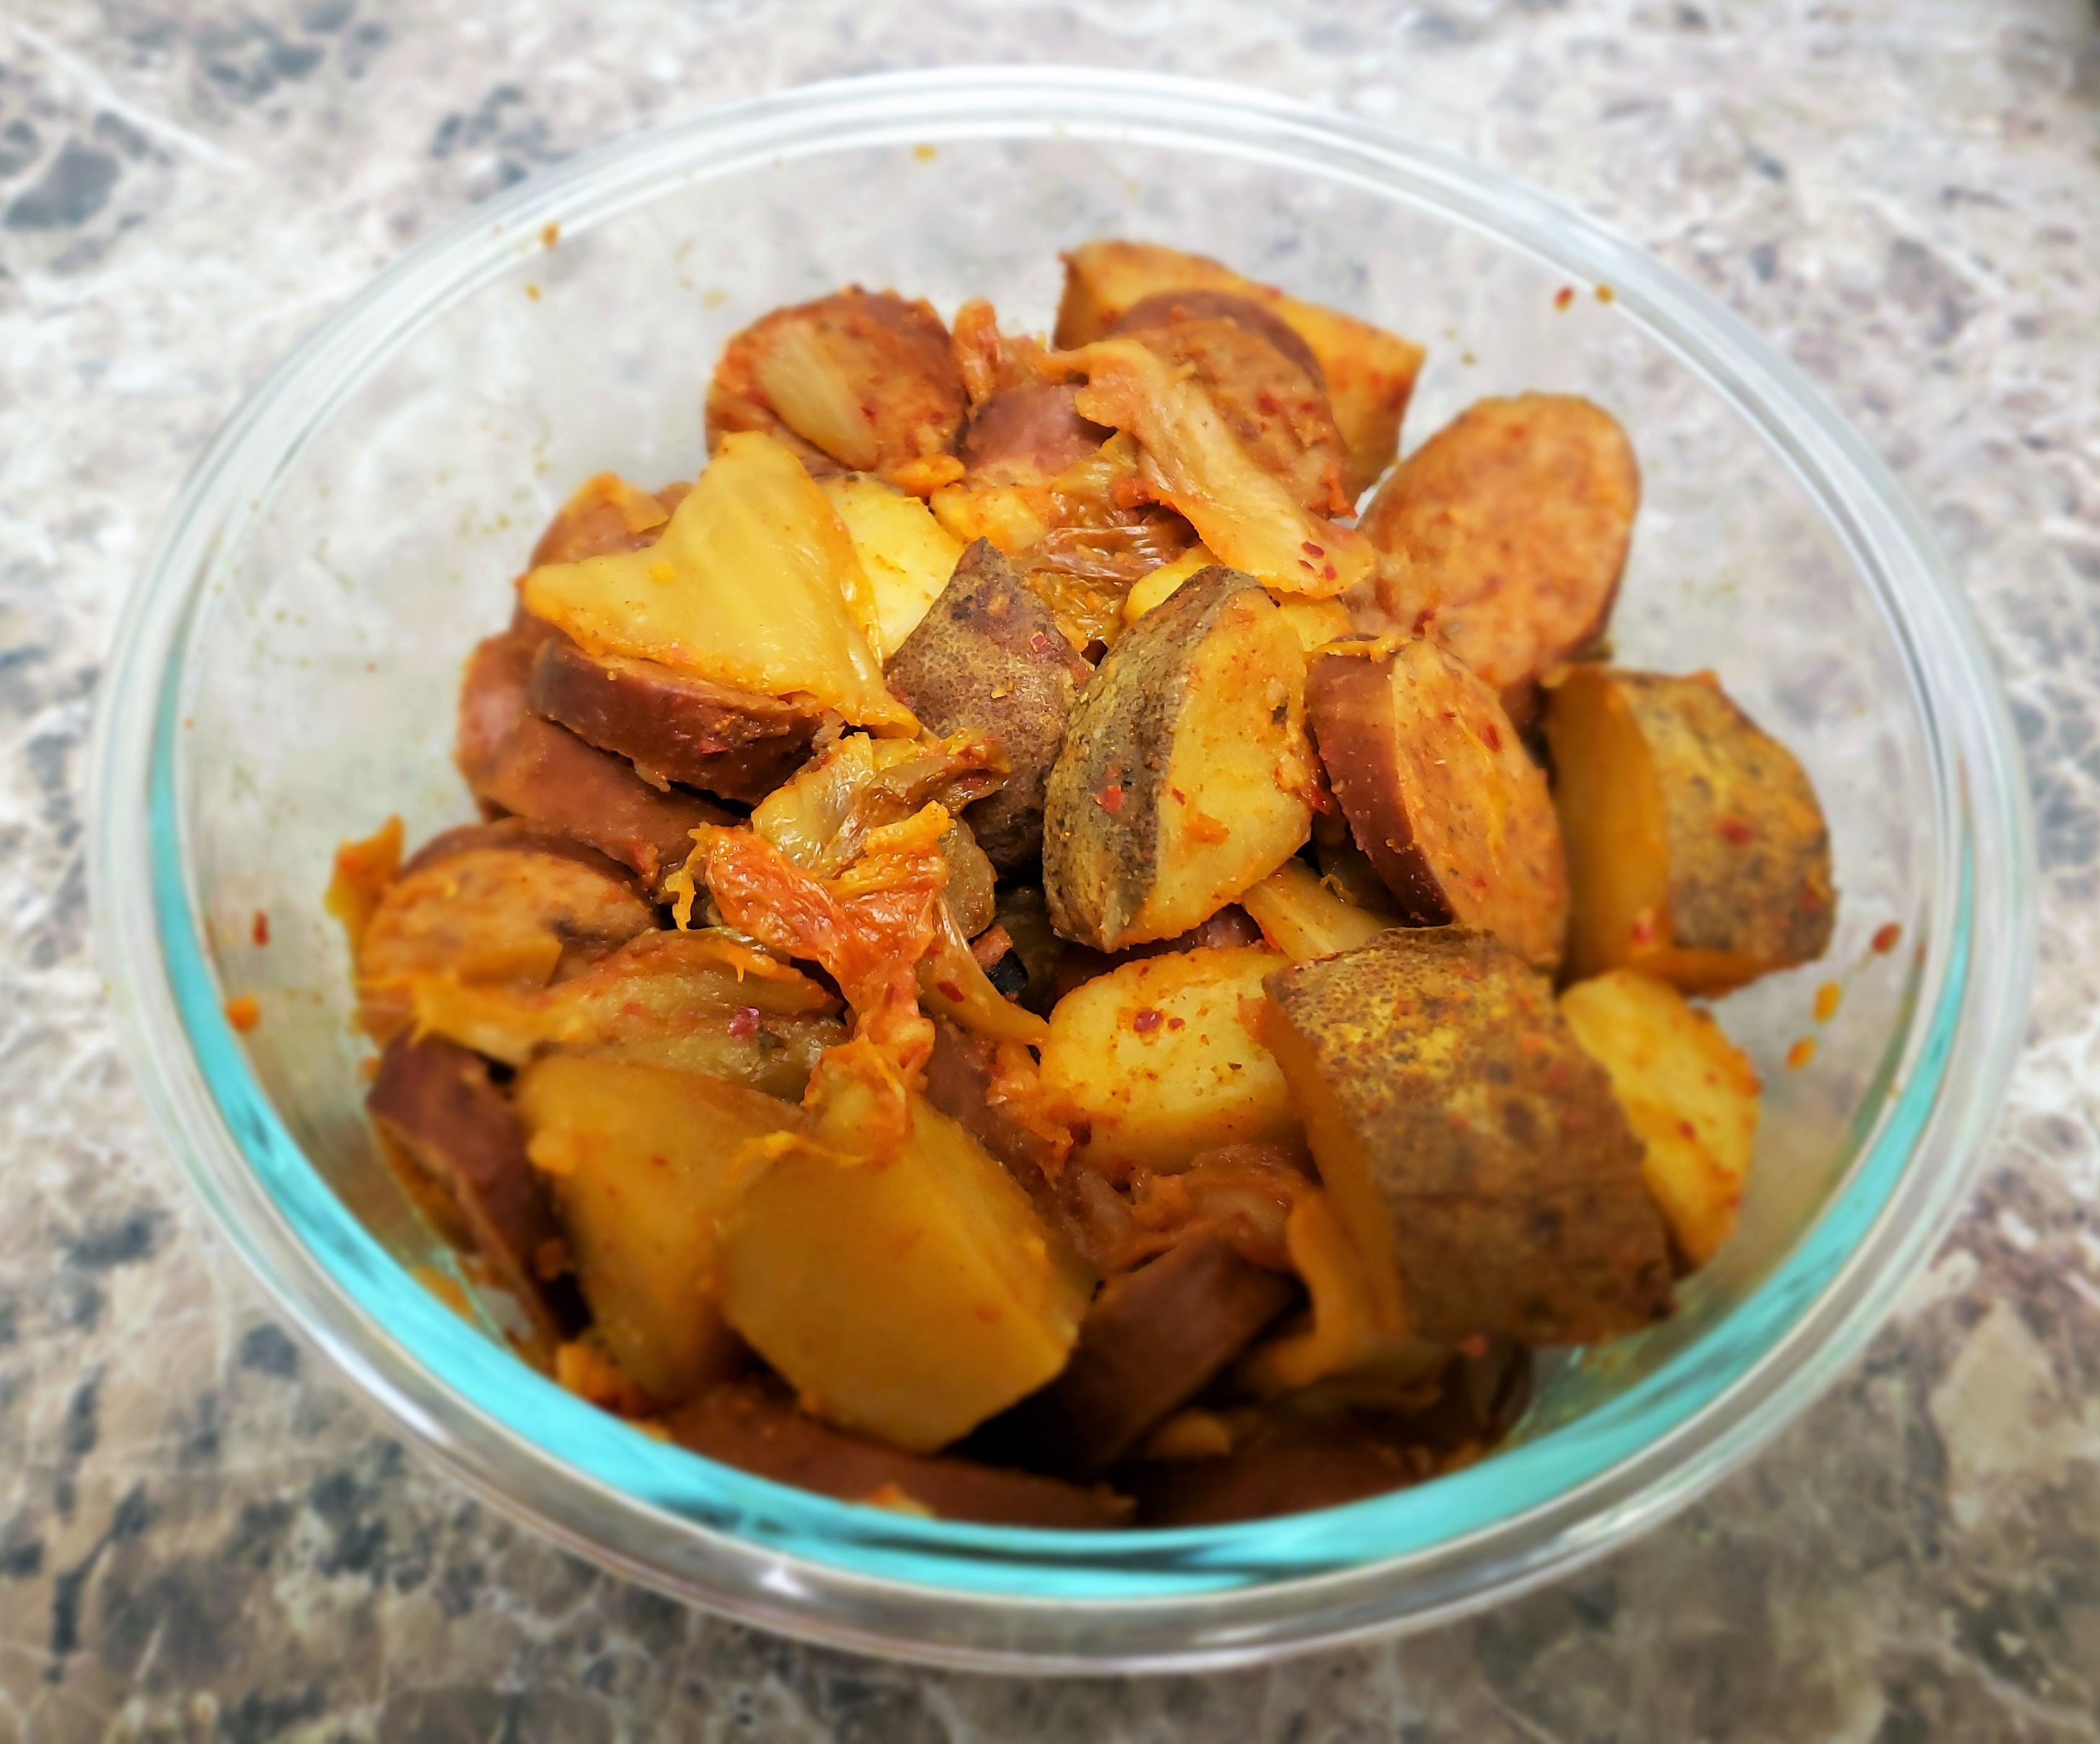 Easy Slow Cooker Turkey Sausage, Potatoes, and Kimchi